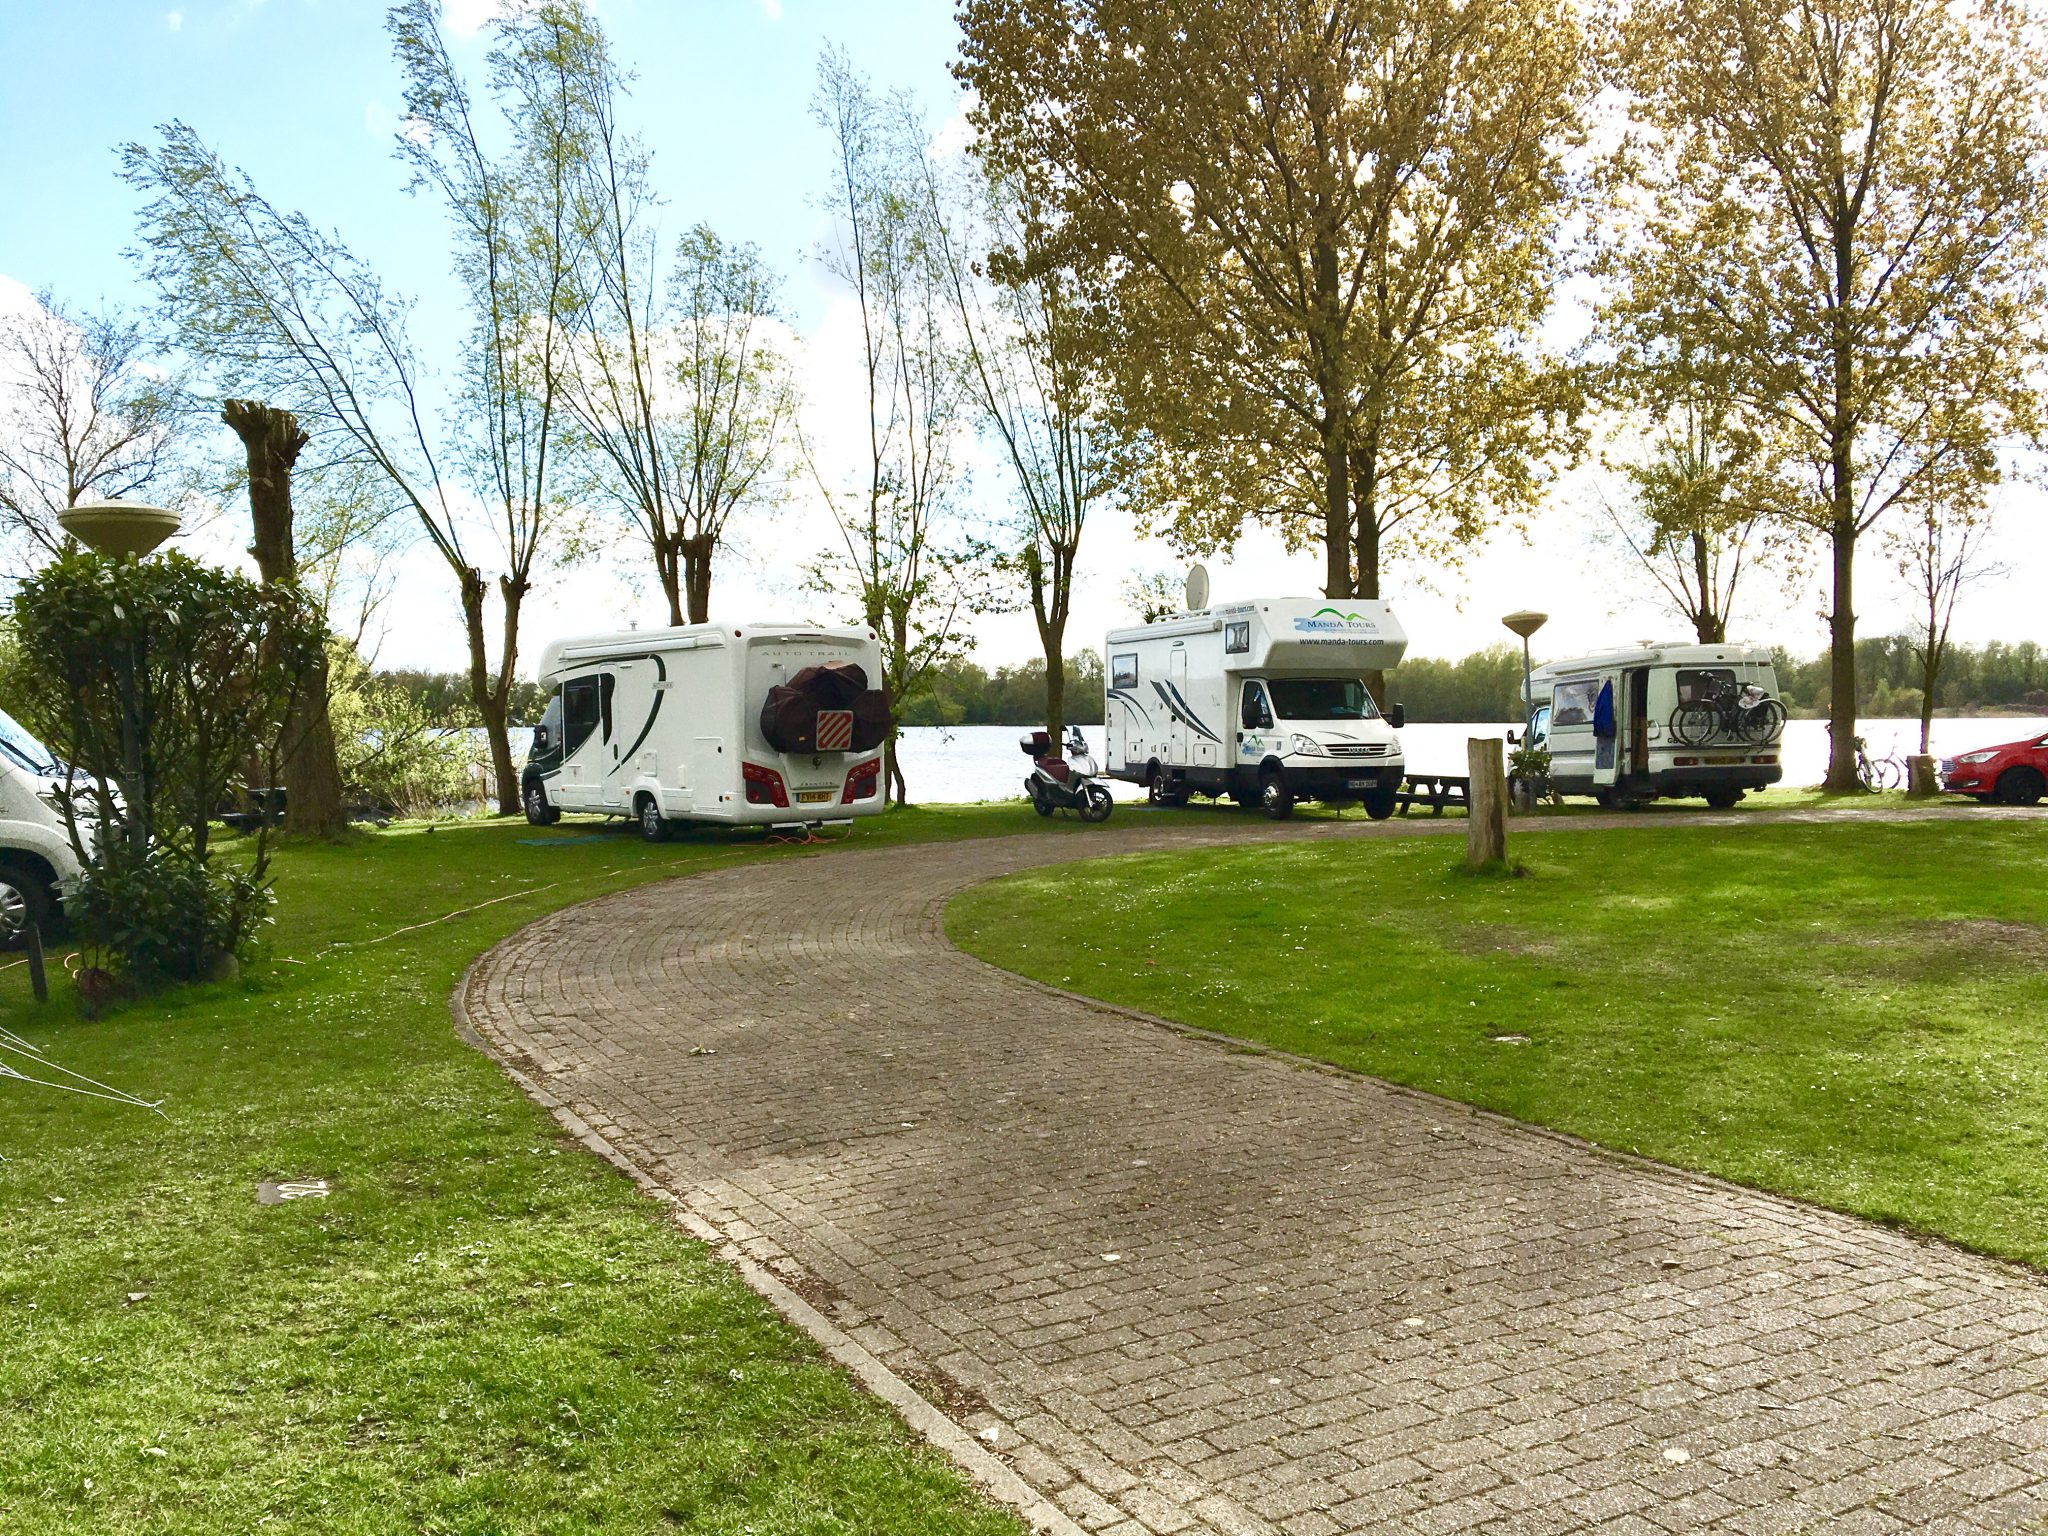 Campsite Amsterdam next to the lake Springtime in Holland escorted motorhome tour 2017